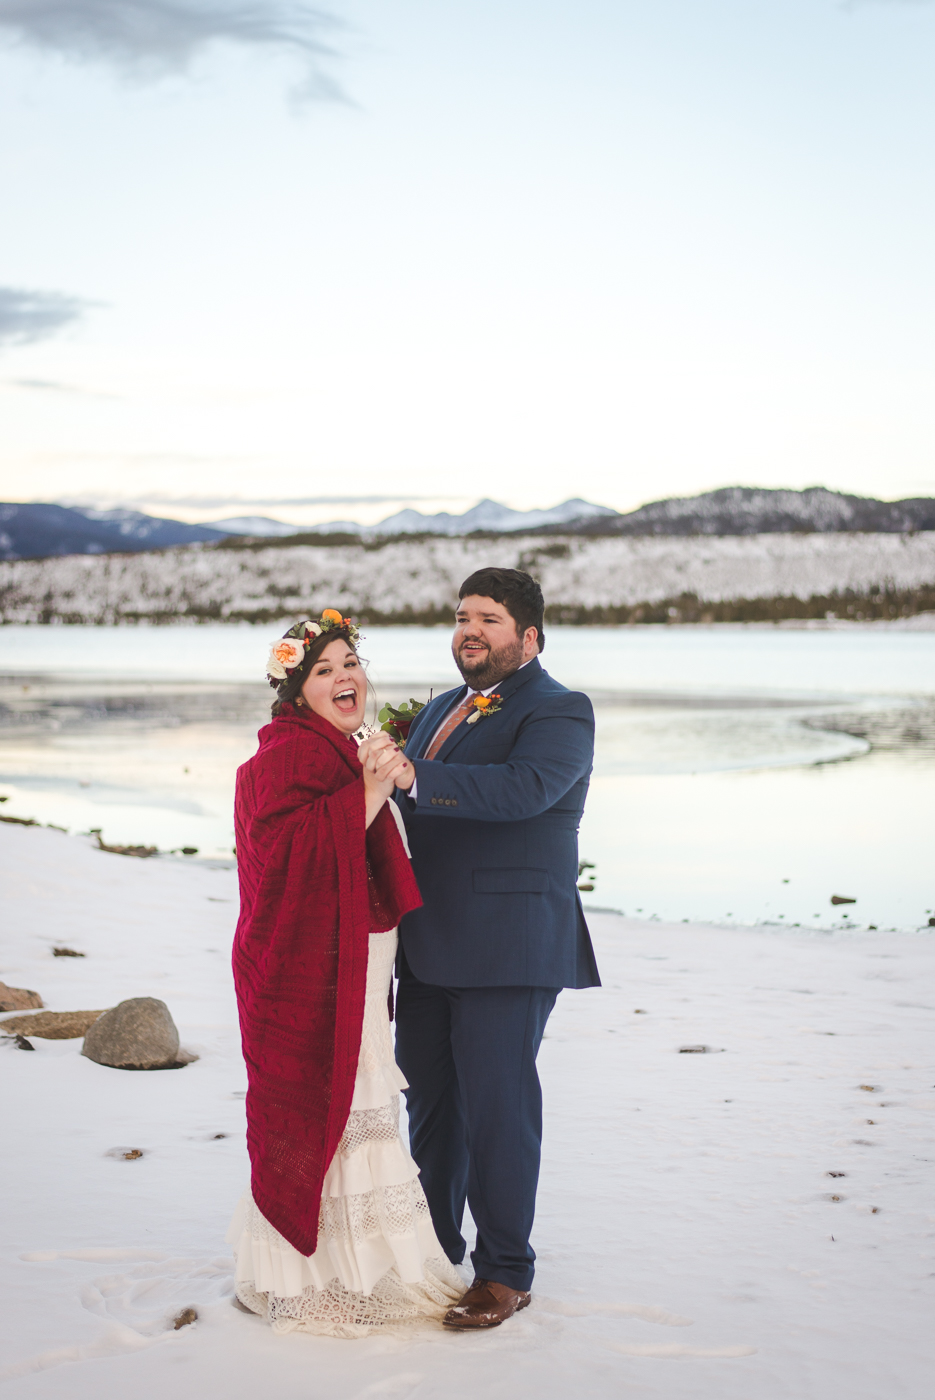 Colorado winter elopement ceremony by the lake | Summit Mountain Weddings